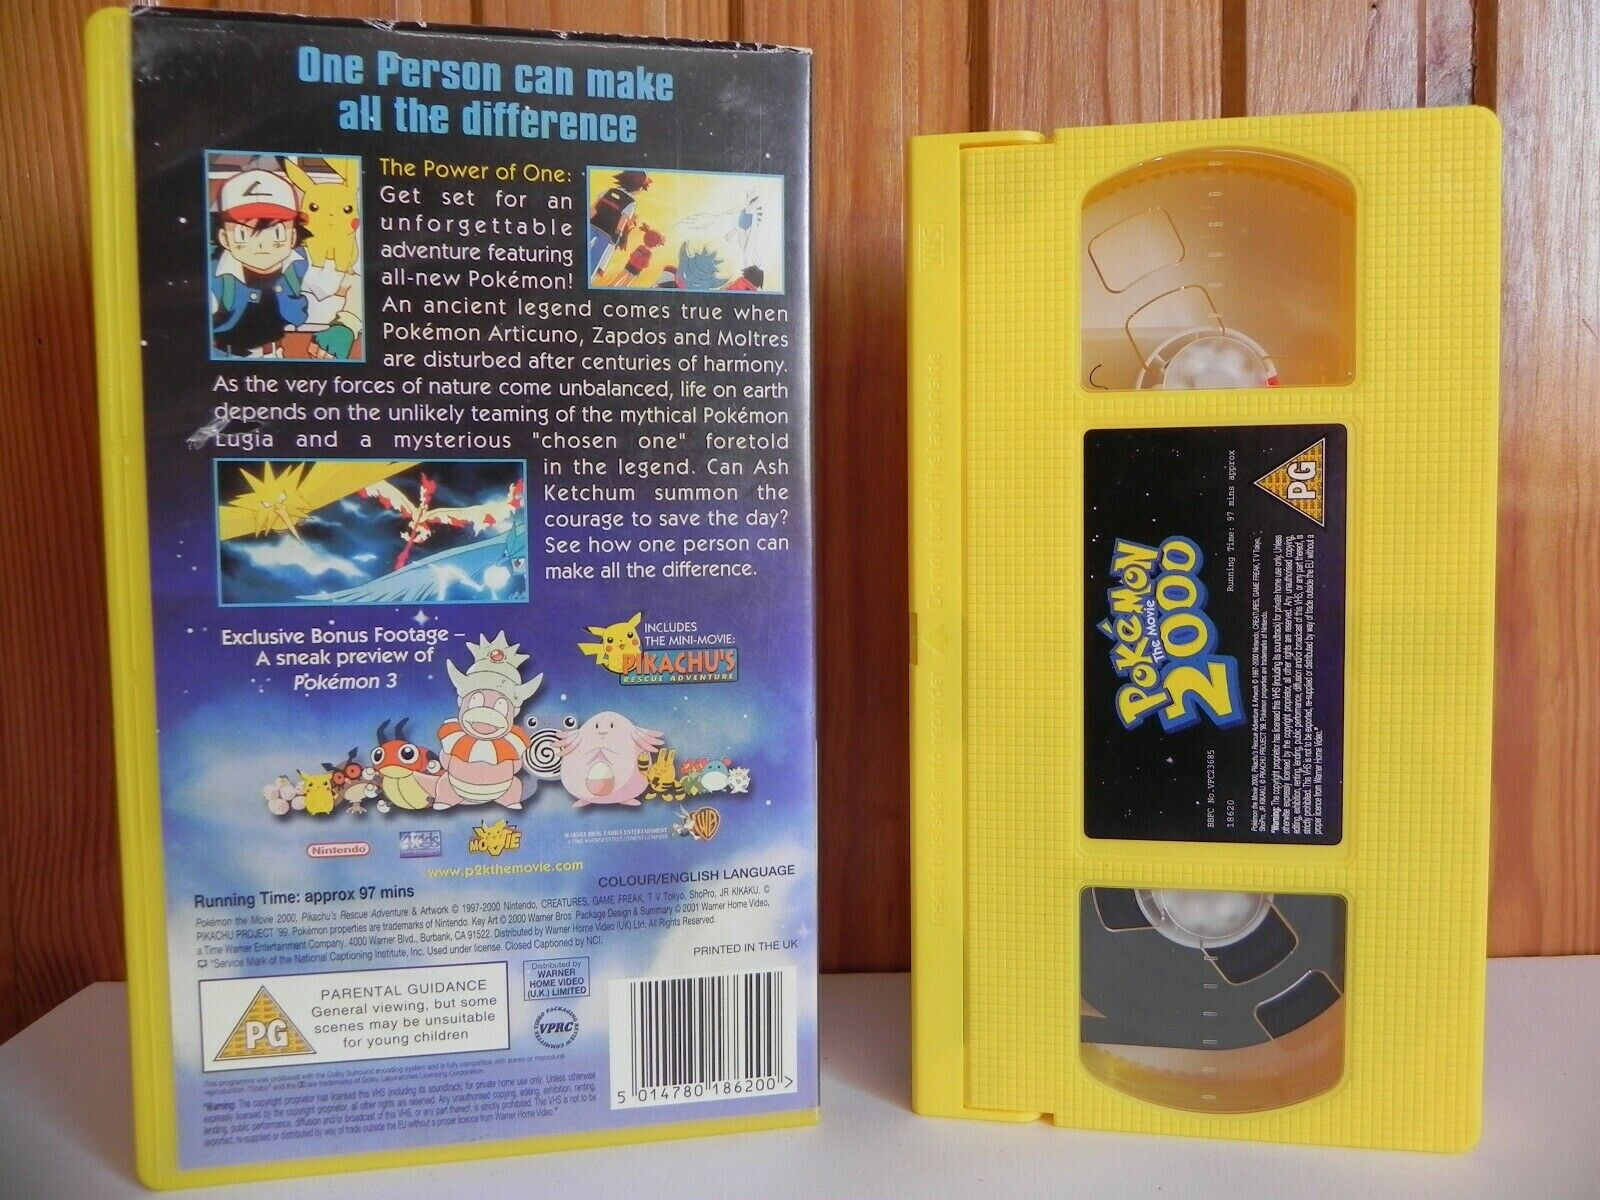 Pokemon 2000: The Movie - Warner Family - Adventure - Animated - Kids - Pal VHS